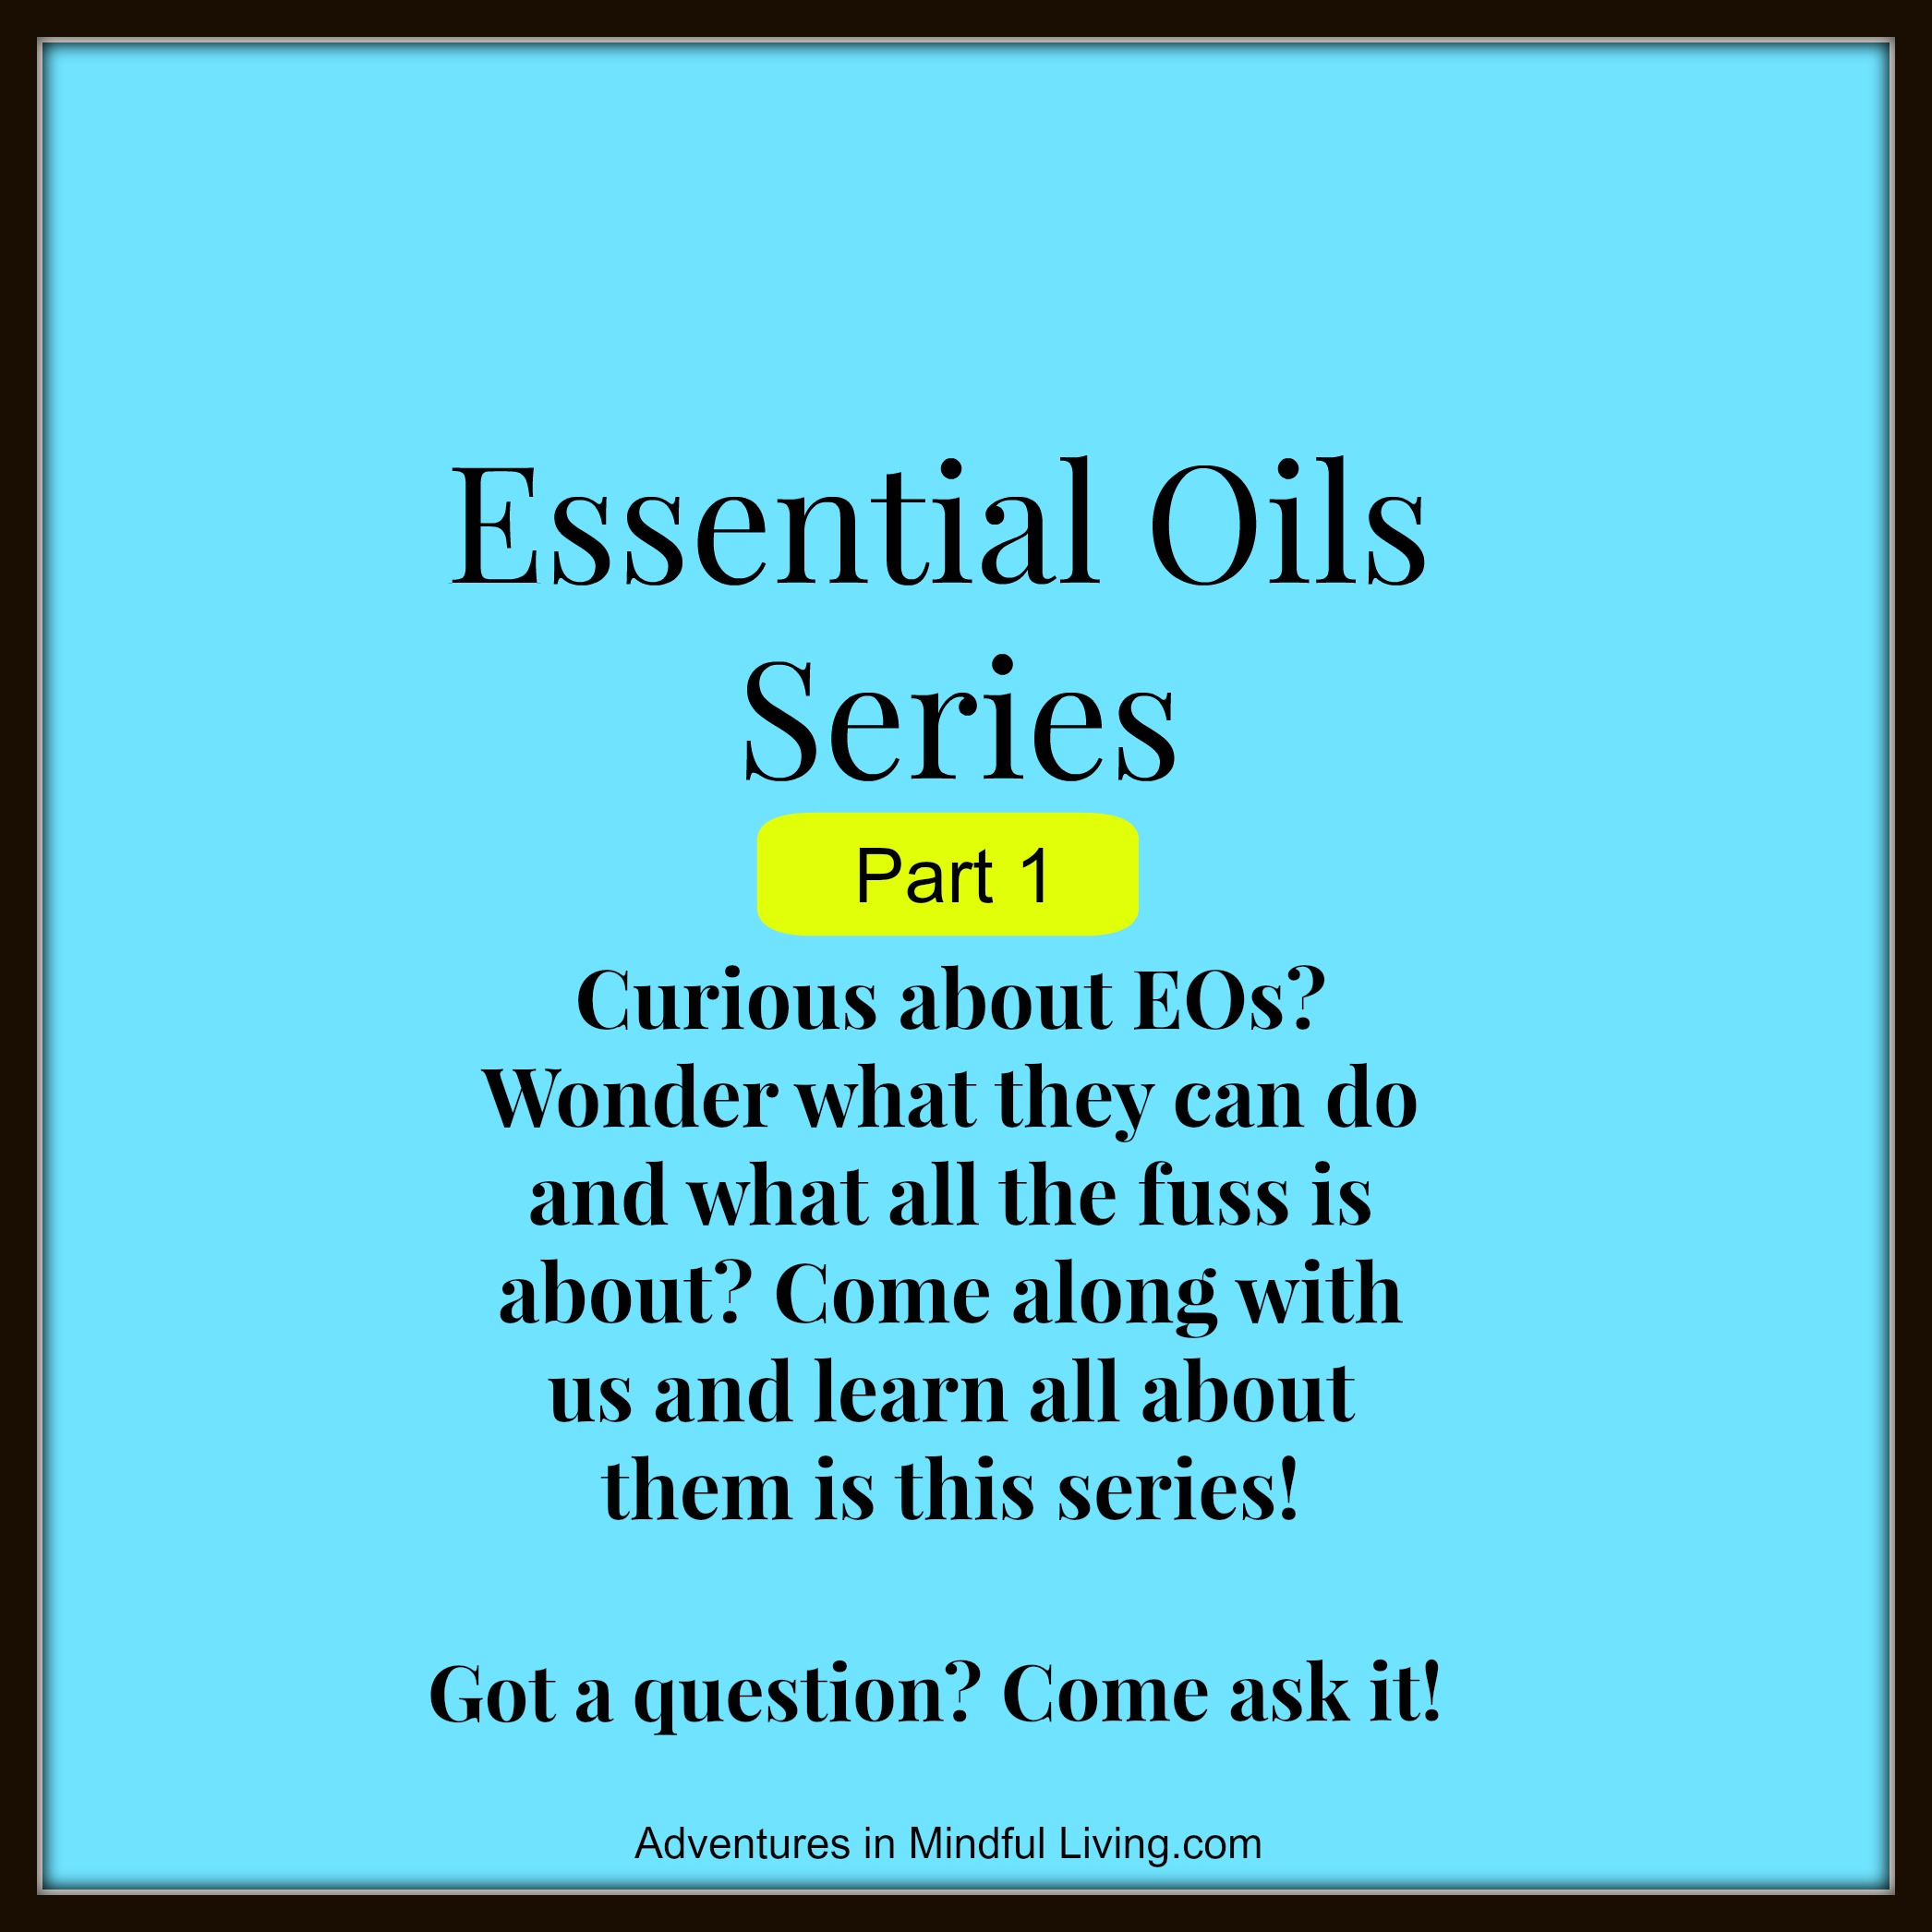 Essential Oils!  Have you ever wanted to learn about Essential Oils? Have you wondered what they really do and what is all the fuss about? Then come along with us and learn all about them in this series at Adventures in Mindful Living!